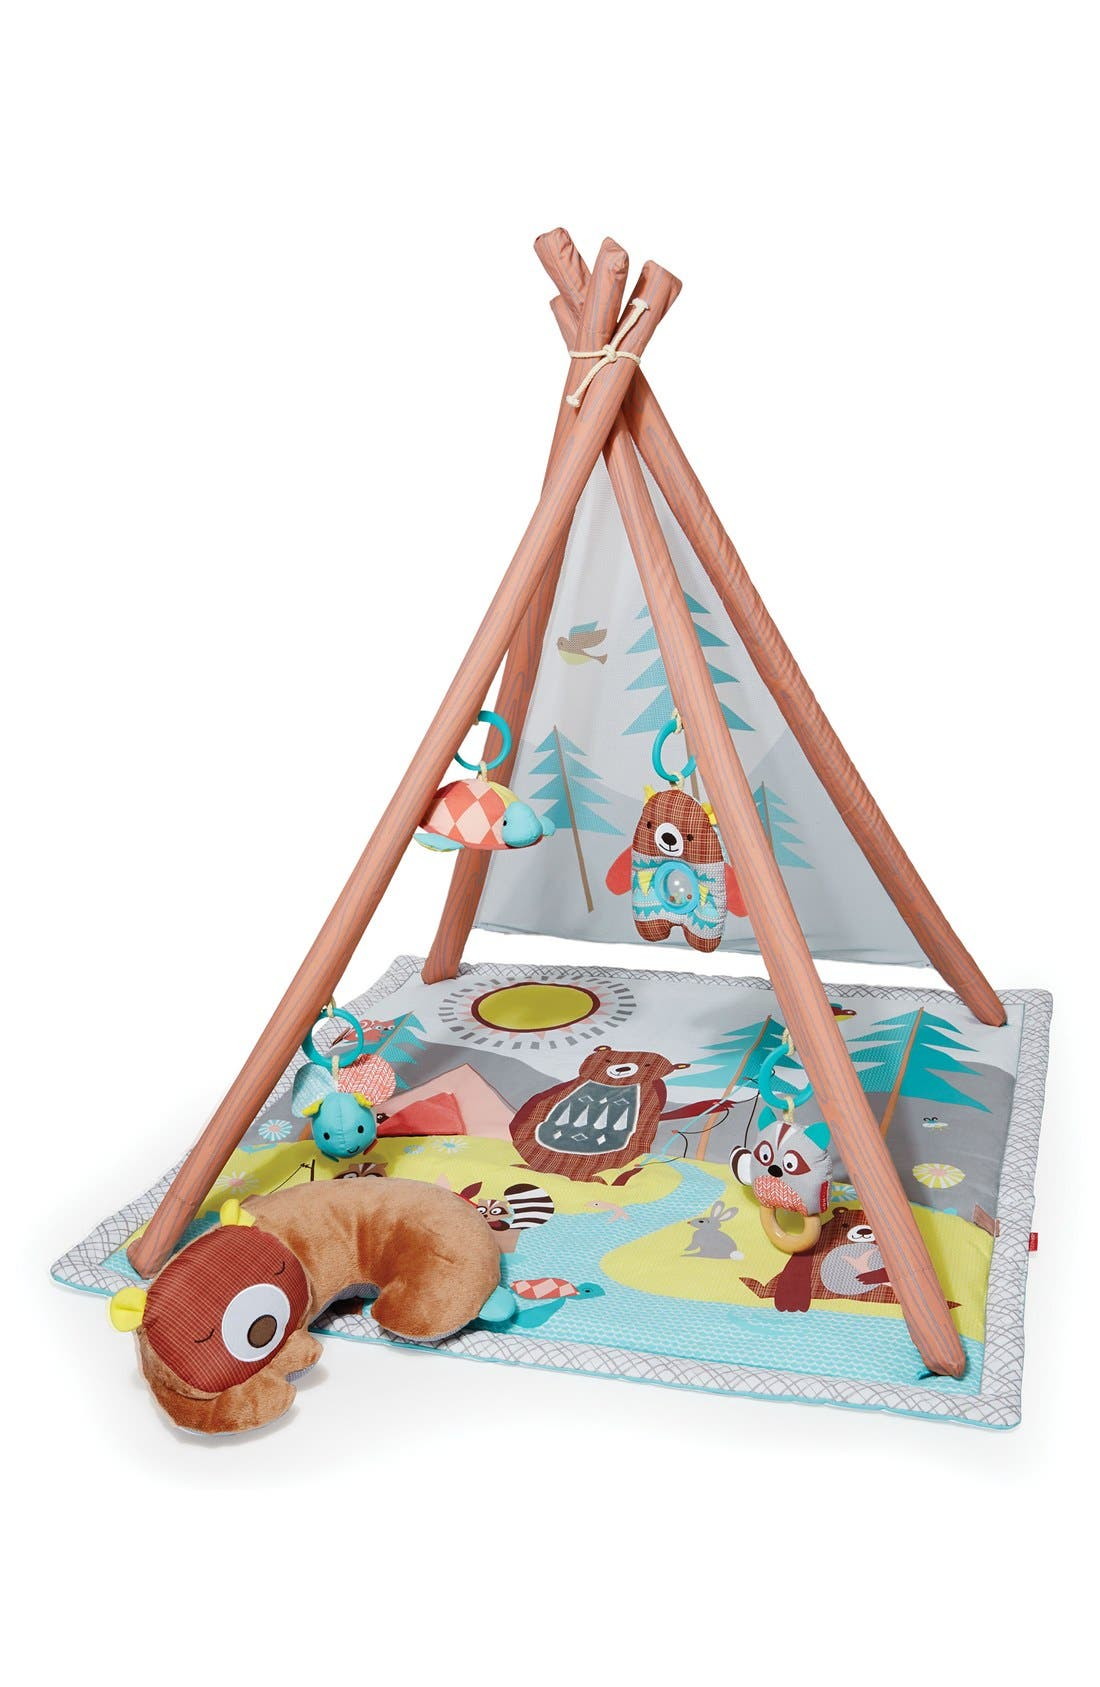 'Camping Cubs' Activity Gym,                         Main,                         color, Multi